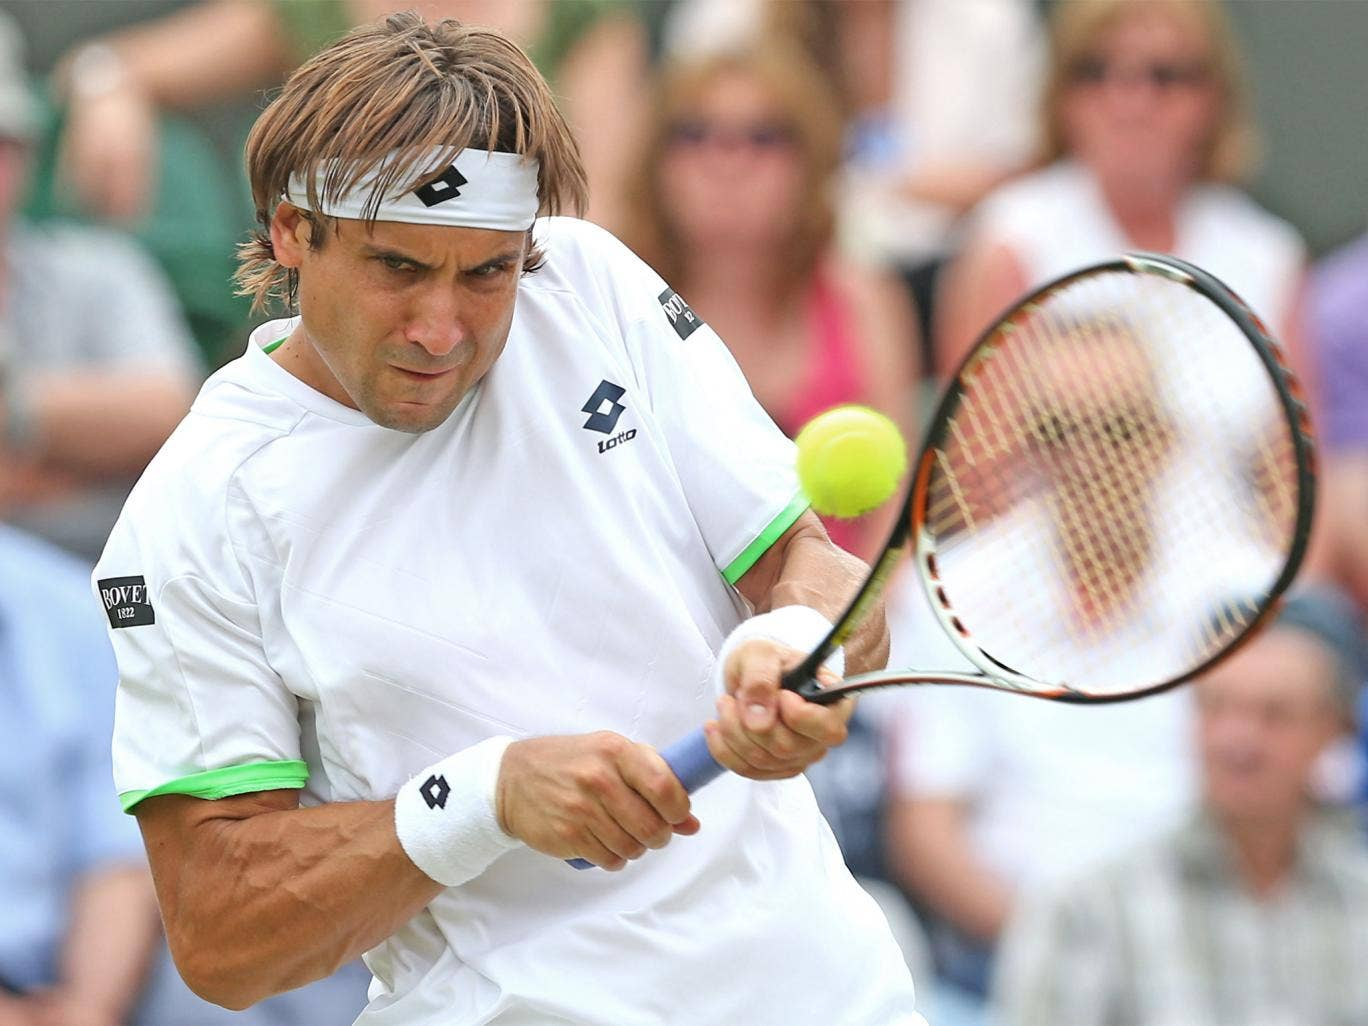 David Ferrer has proved his ability on all surfaces